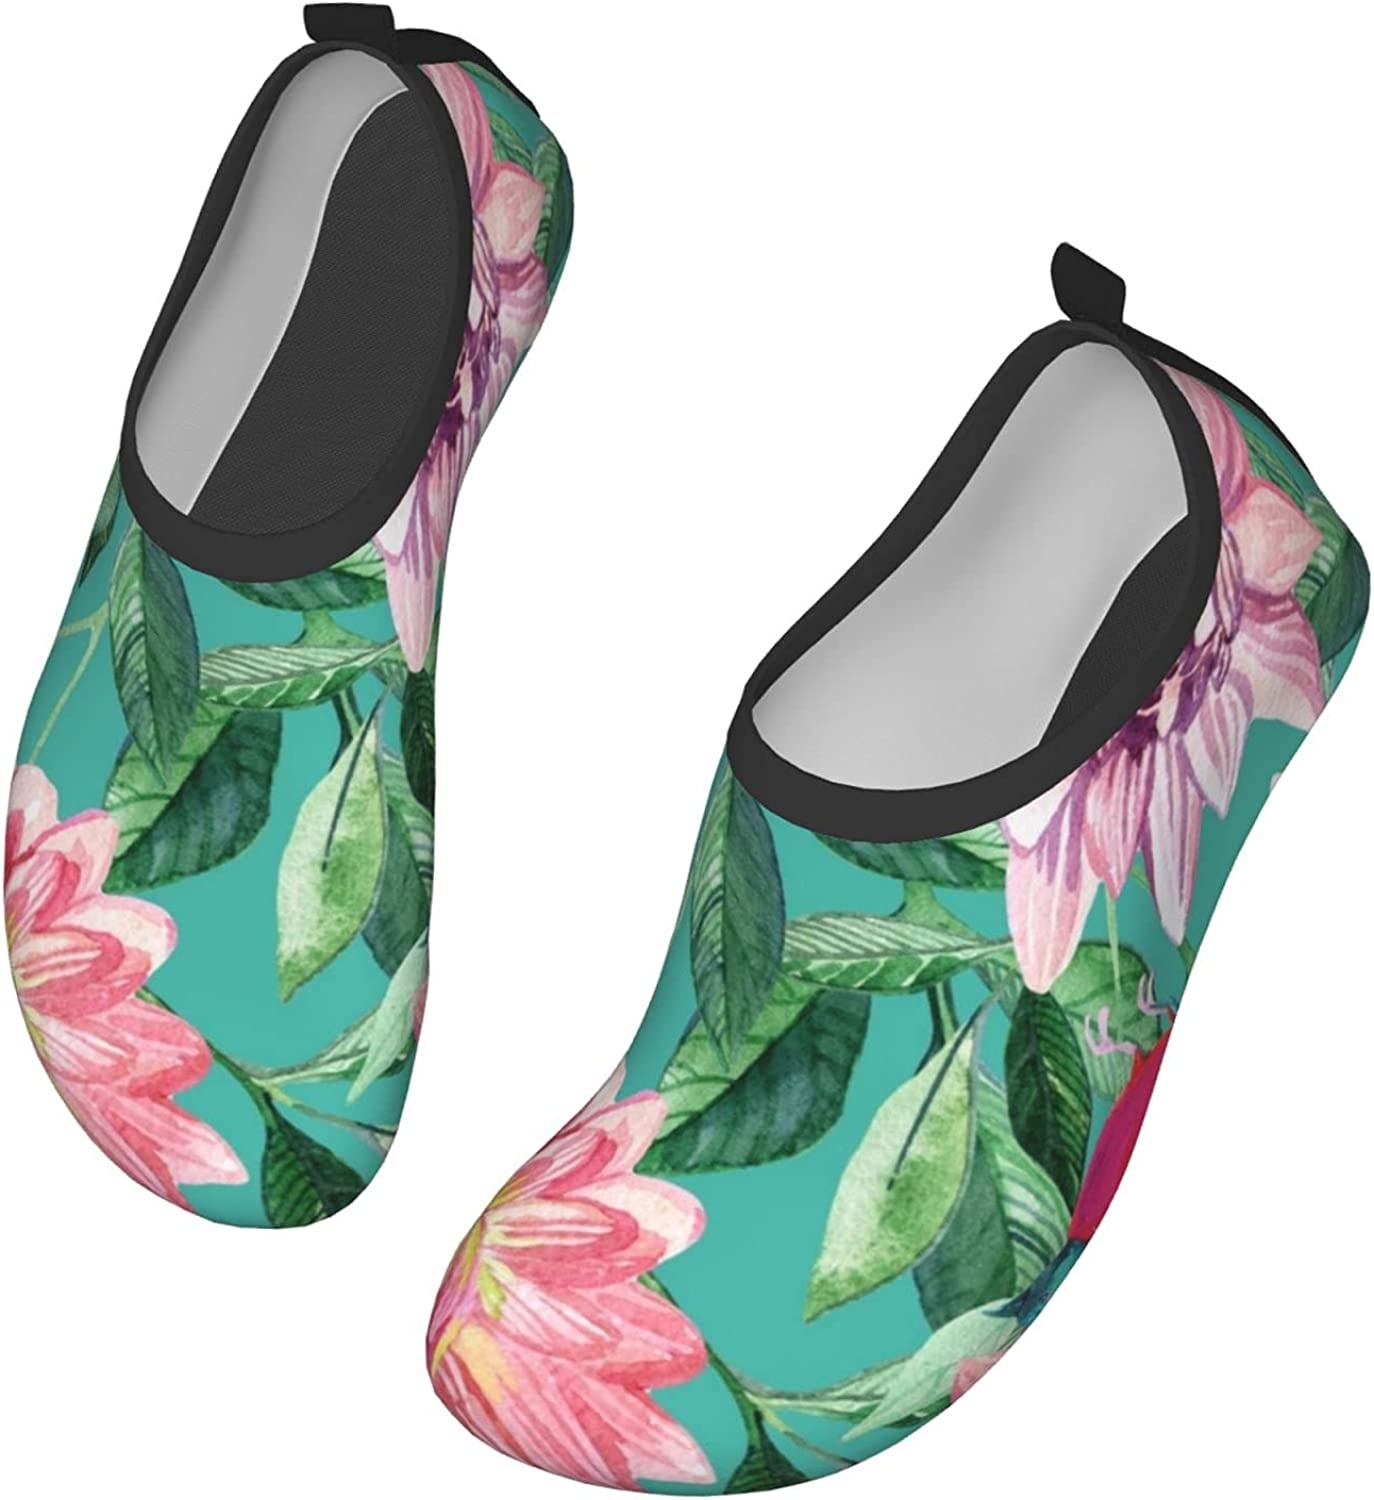 Watercolor Asters and Birds Womens and Mens Water Shoes Barefoot Quick-Dry Aqua Socks Slip-On for Outdoor Beach Swim Yoga